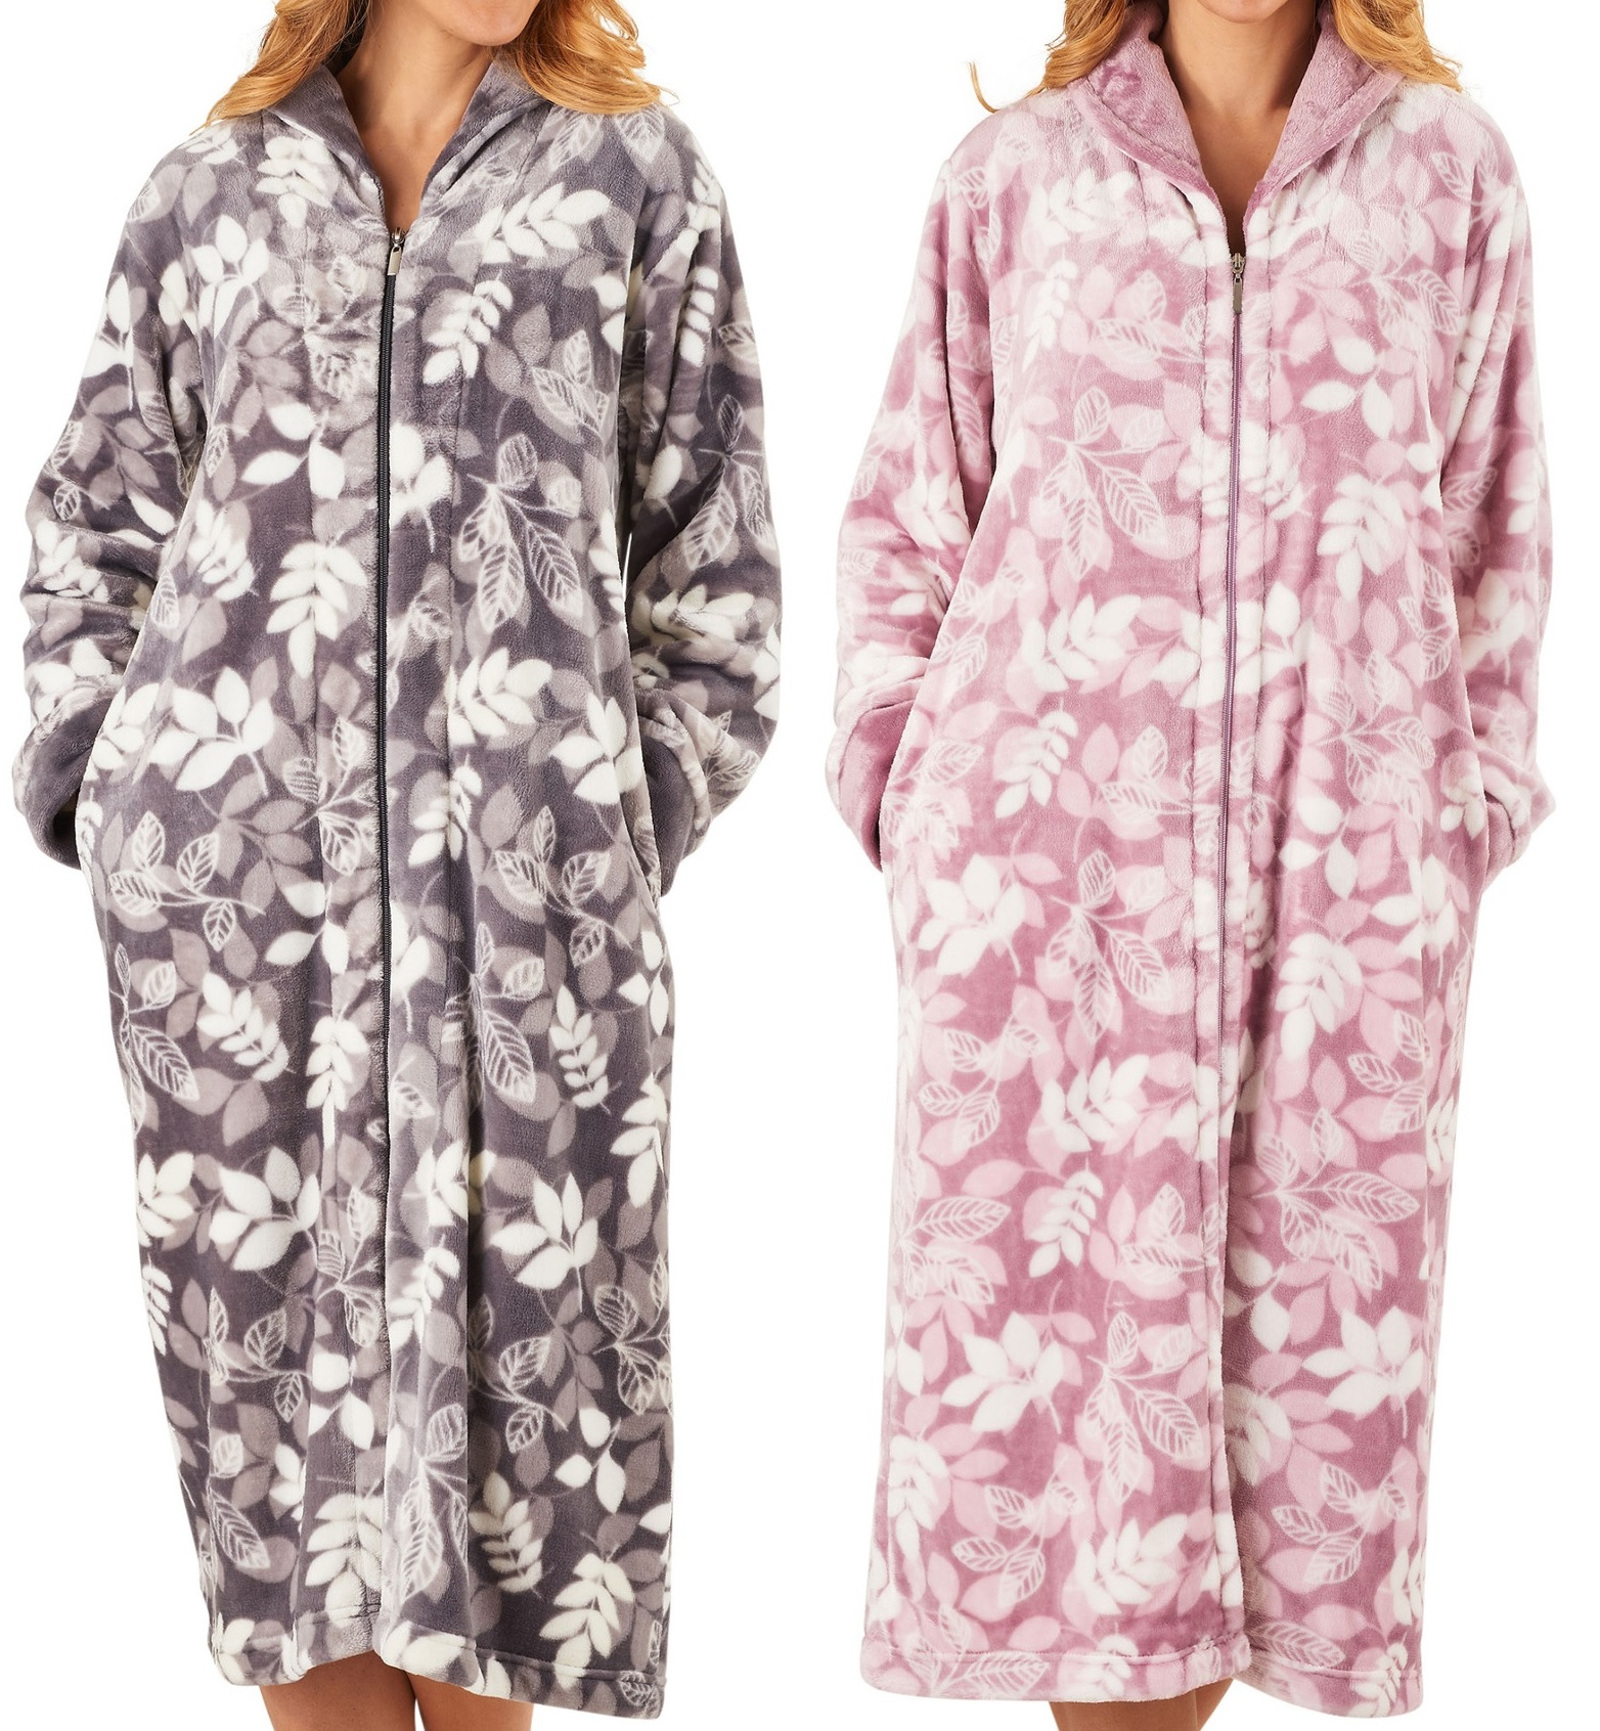 Dressing Gown Womens Leaf Pattern Zip Up Bathrobe Slenderella ...